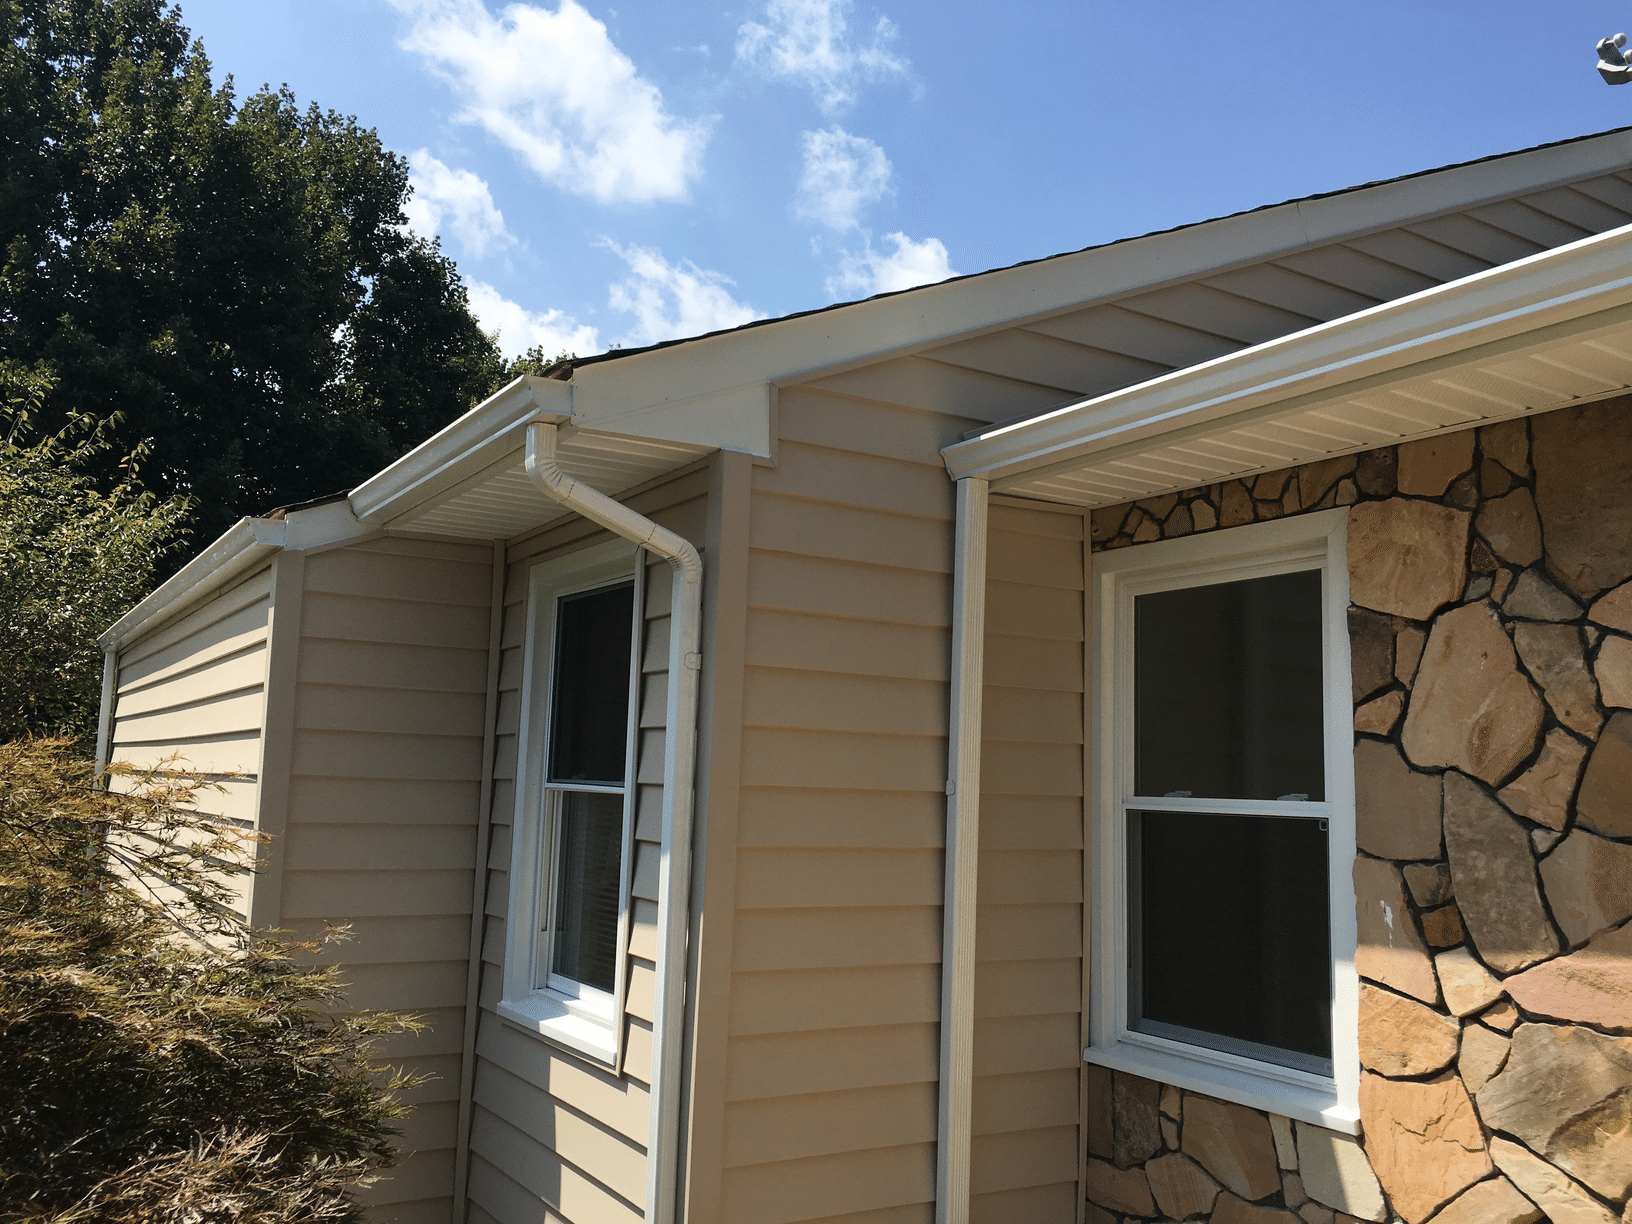 Siding Replacement in Vinton - After Photo